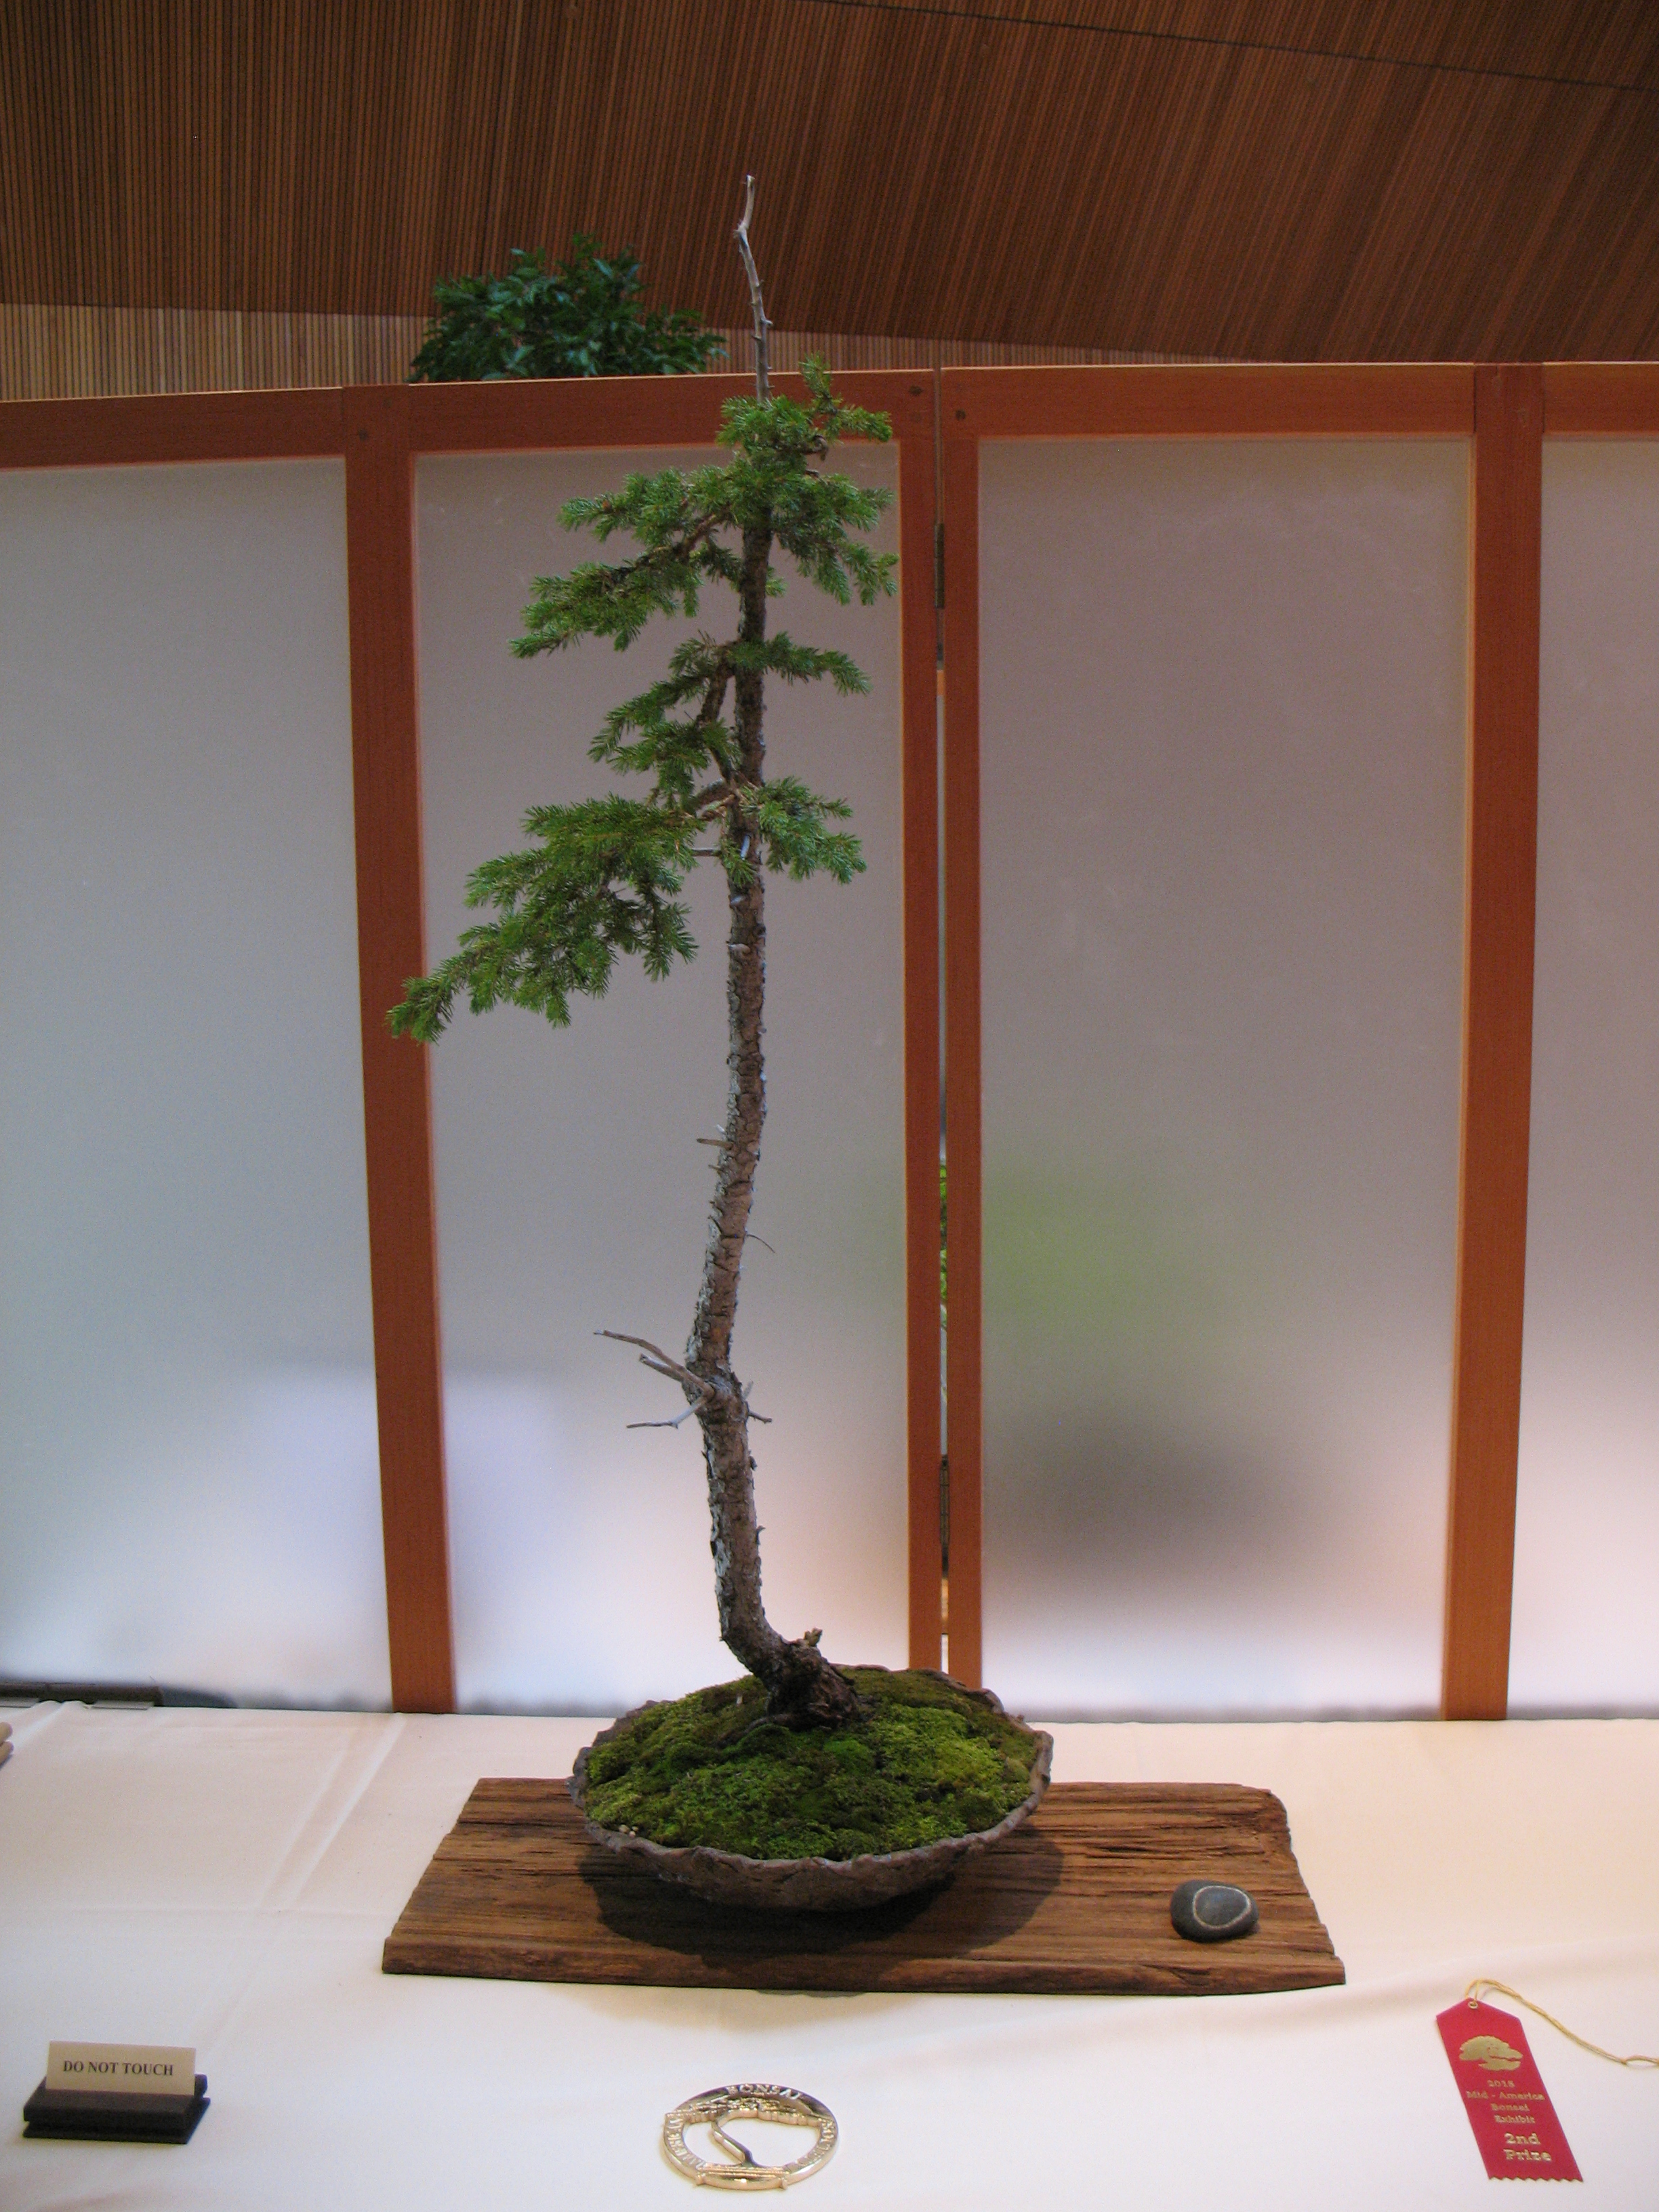 ExhibitGallery Midwest Bonsai Society - Black hills spruce bonsai trees